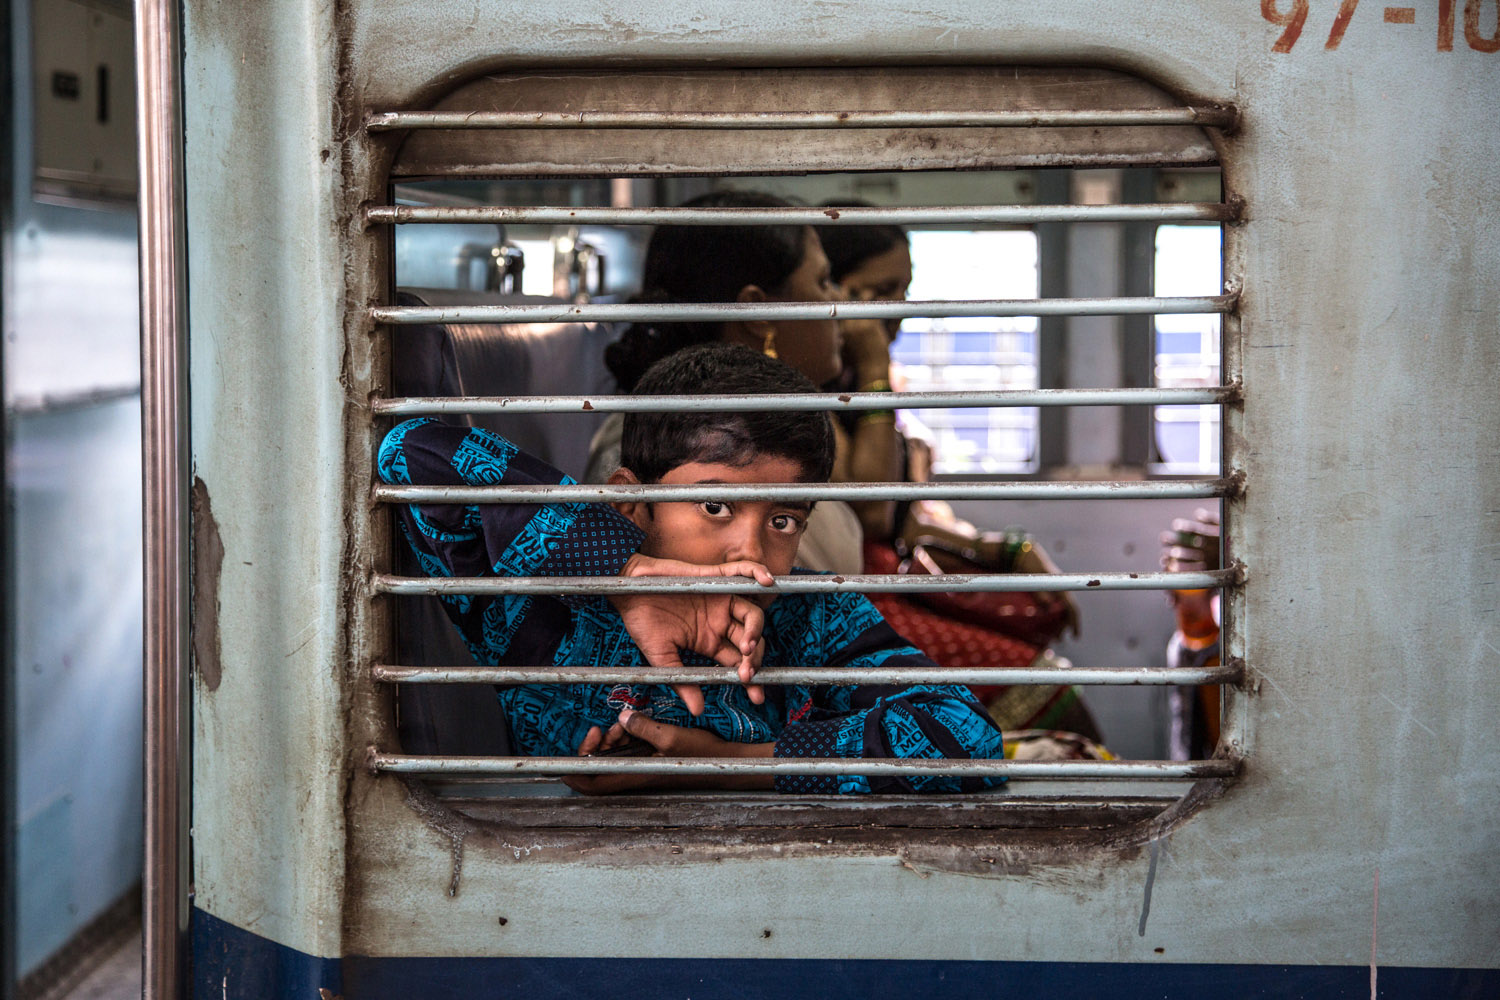 Mumbai Bound by Souleyman Messalti